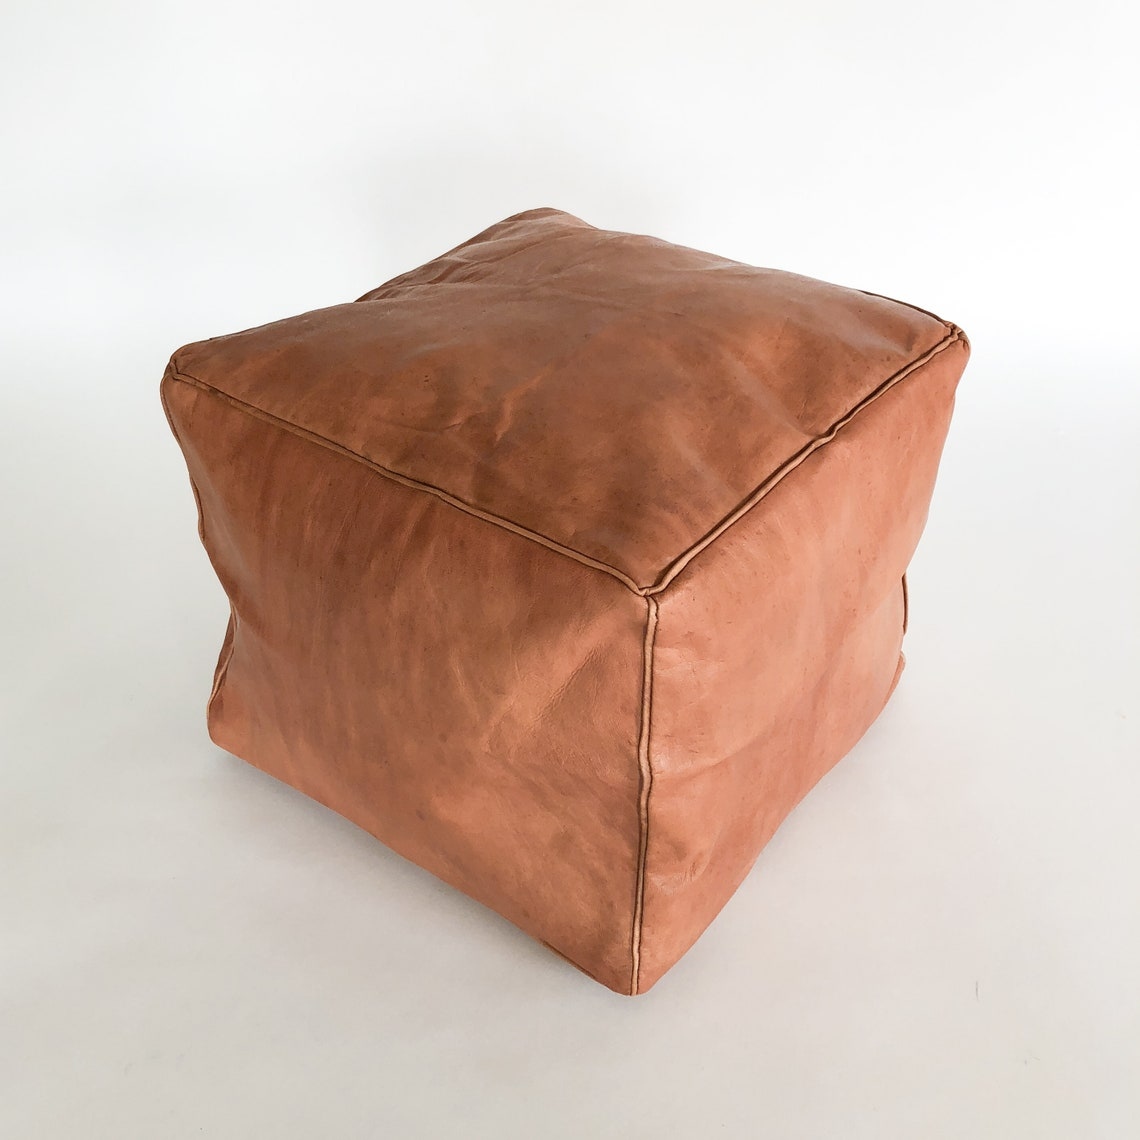 Small Square Leather Moroccan Pouf - Piping on Seams - Kids